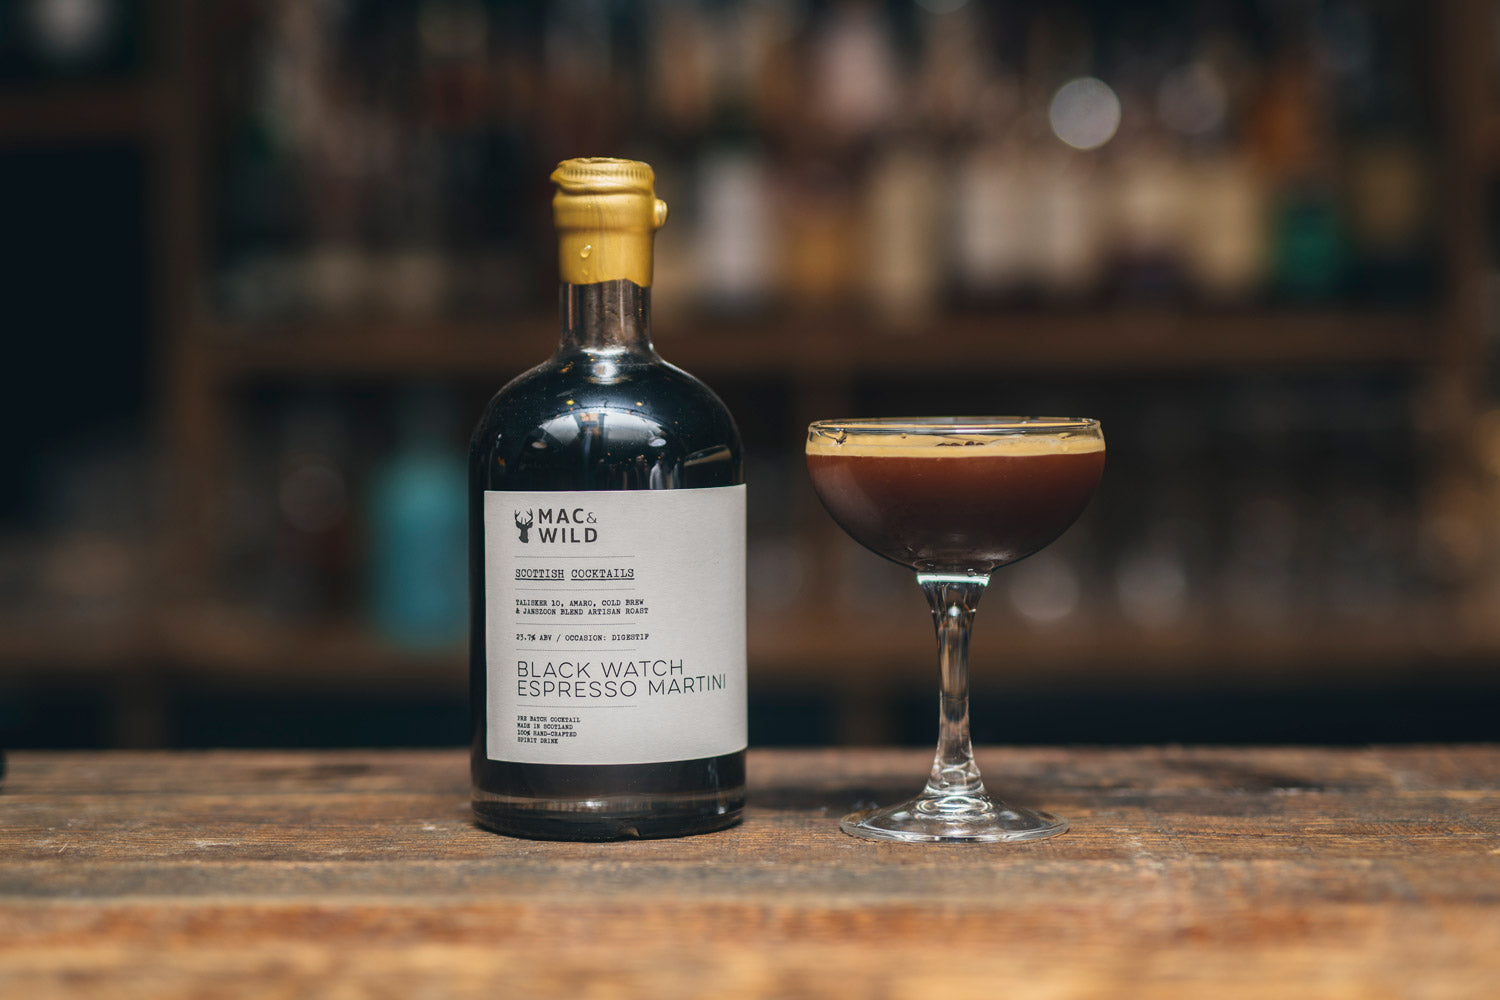 Blackwatch Espresso Martini - Mac & Wild